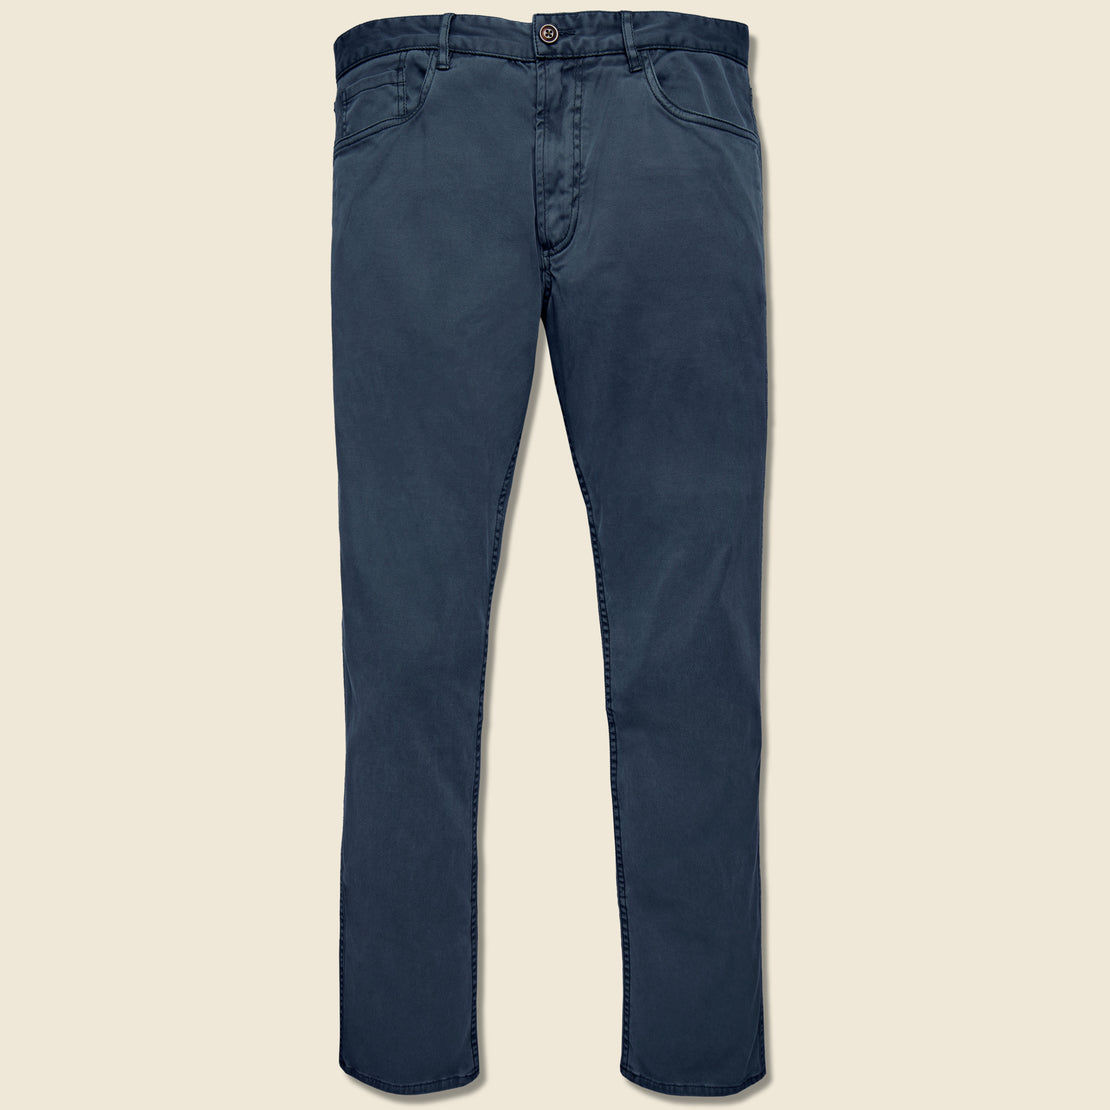 Faherty Comfort Twill Jean - Navy